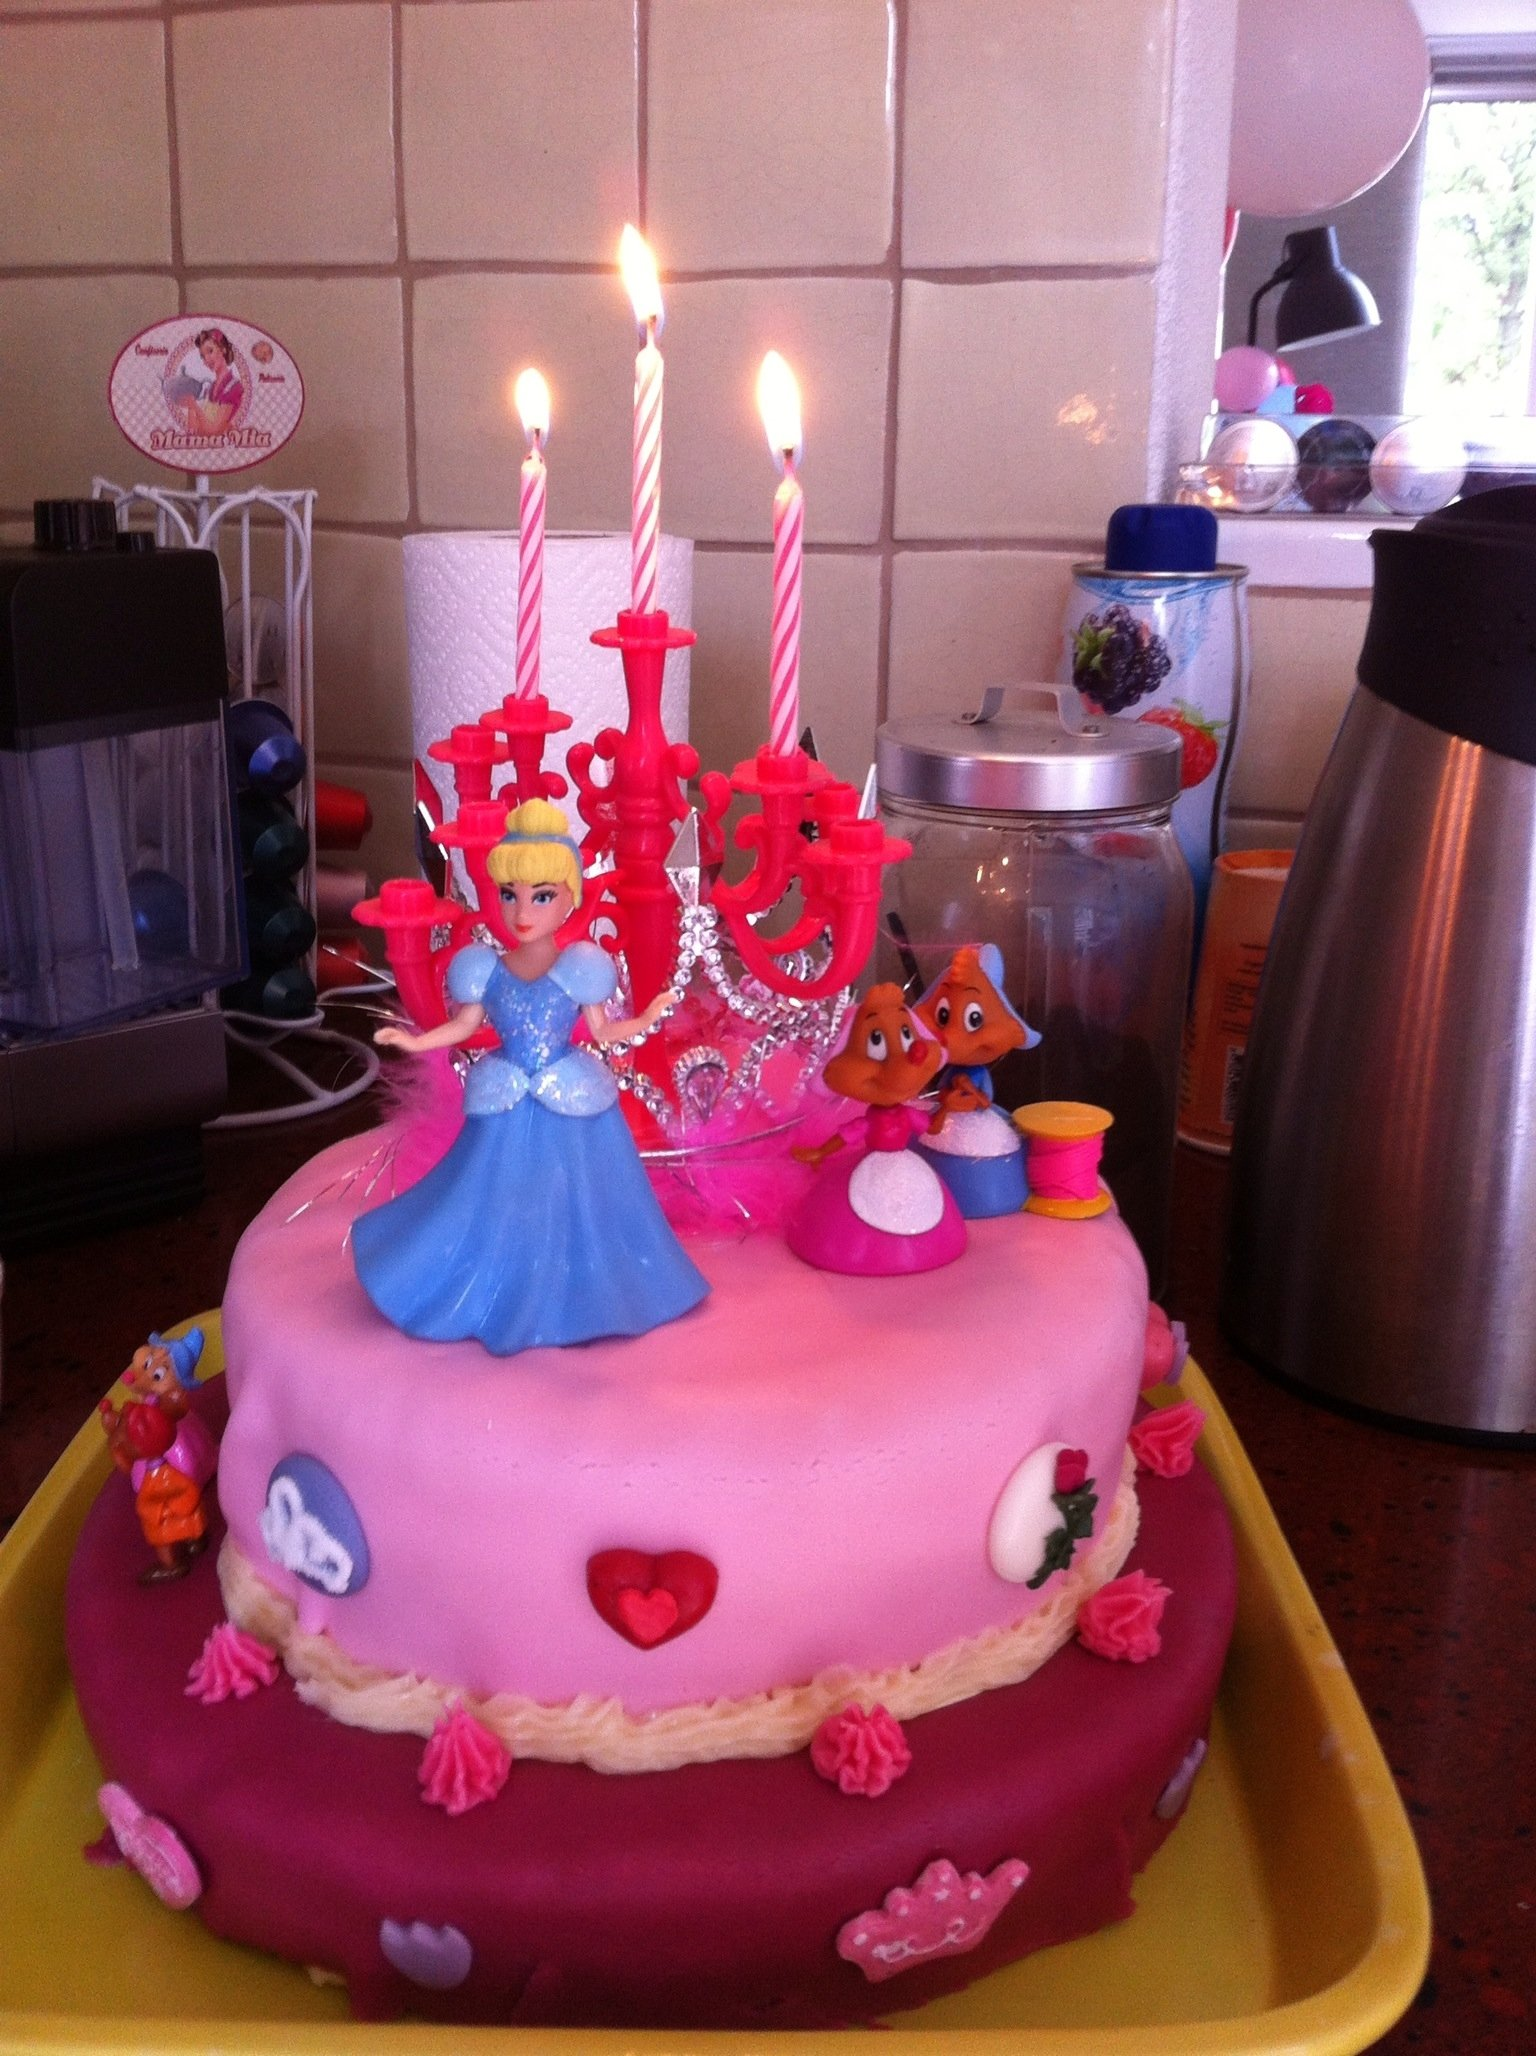 10 Fabulous 3 Year Old Girl Birthday Ideas birthday cake for my 3 years old girl 3 year old idea phoograpy 2020